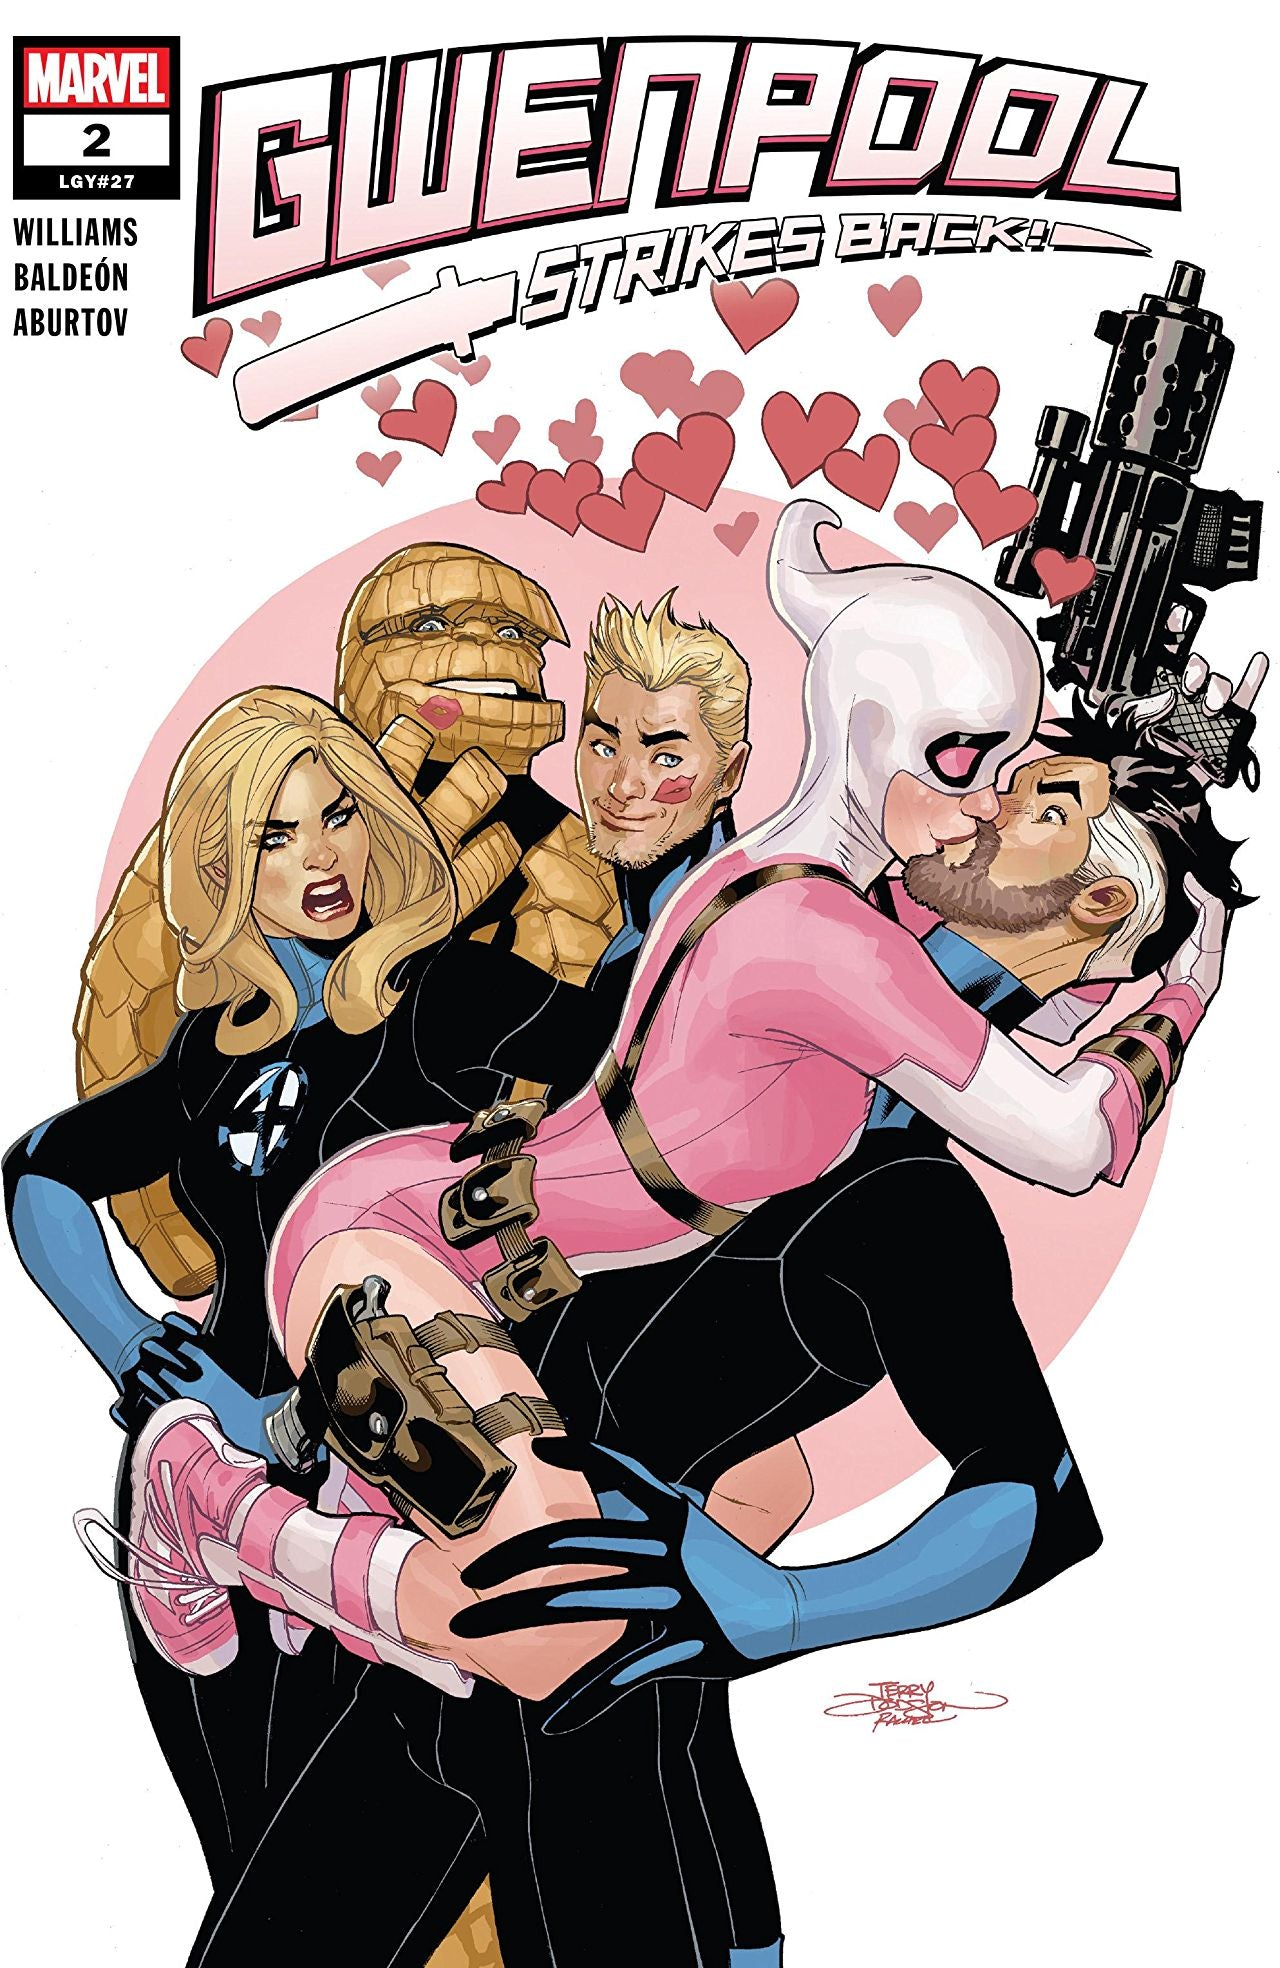 Gwenpool Strikes Back! (2019) #2 (of 5)